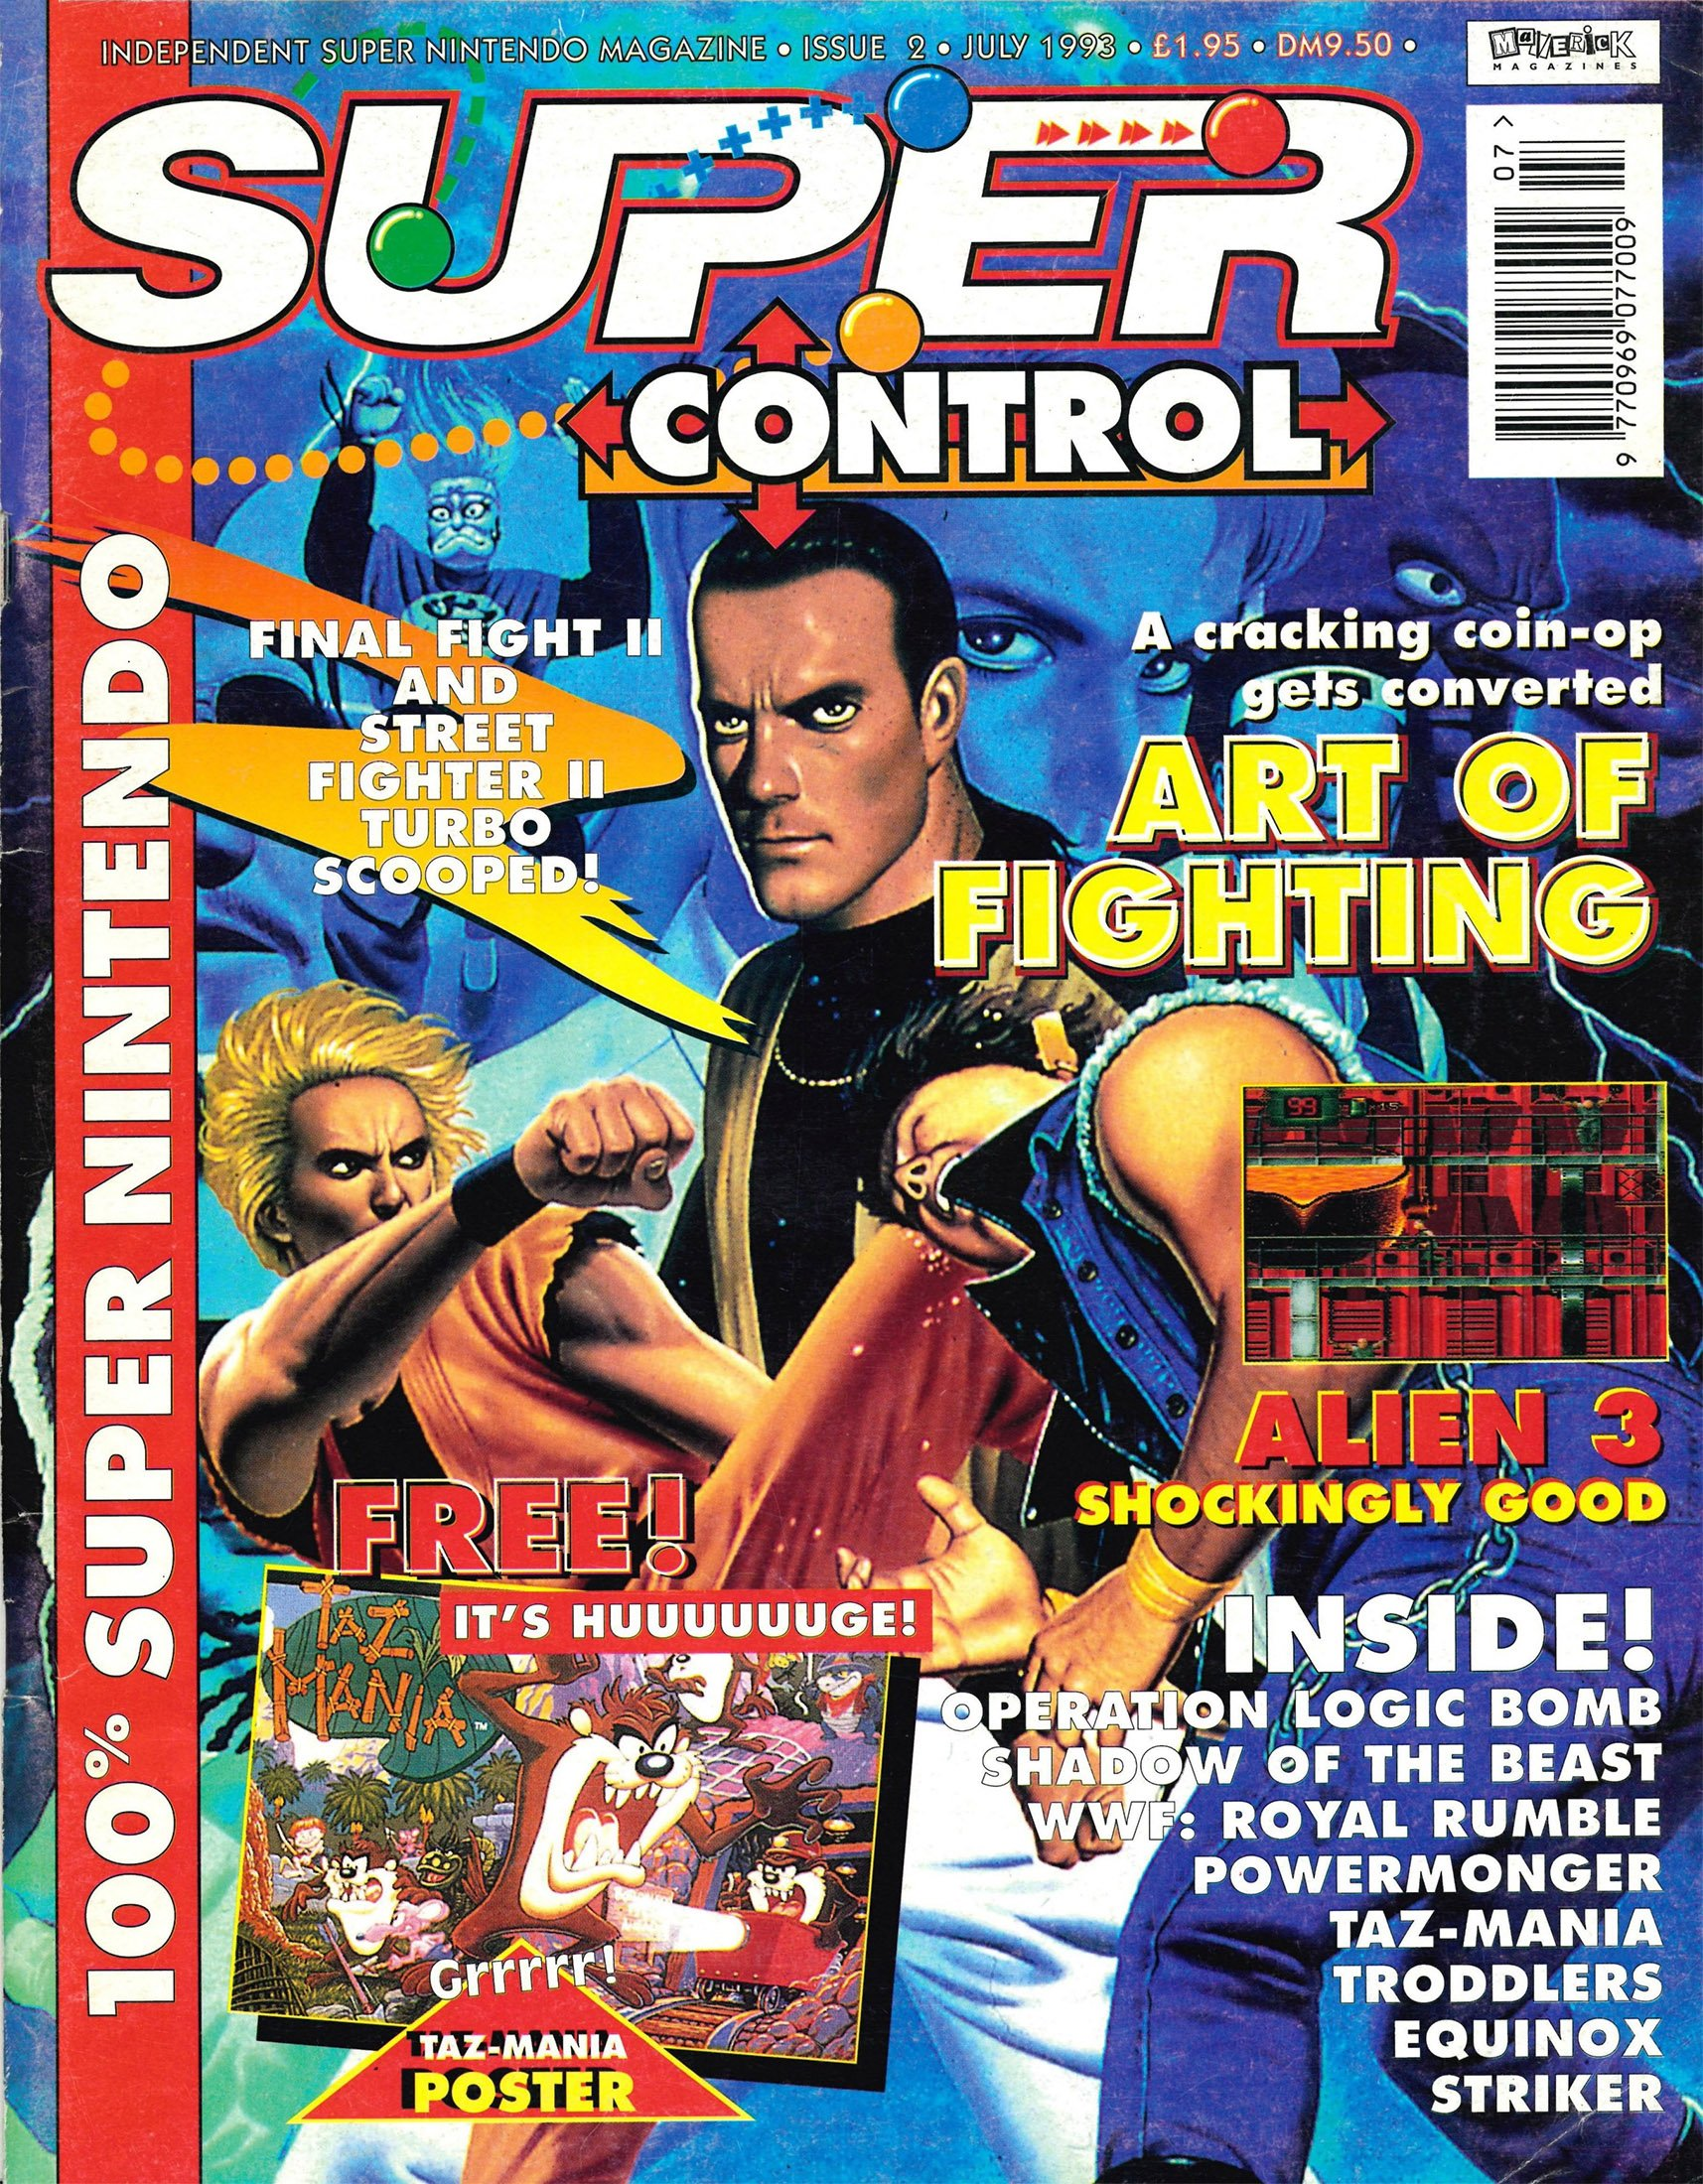 Super Control Issue 02 (July 1993)